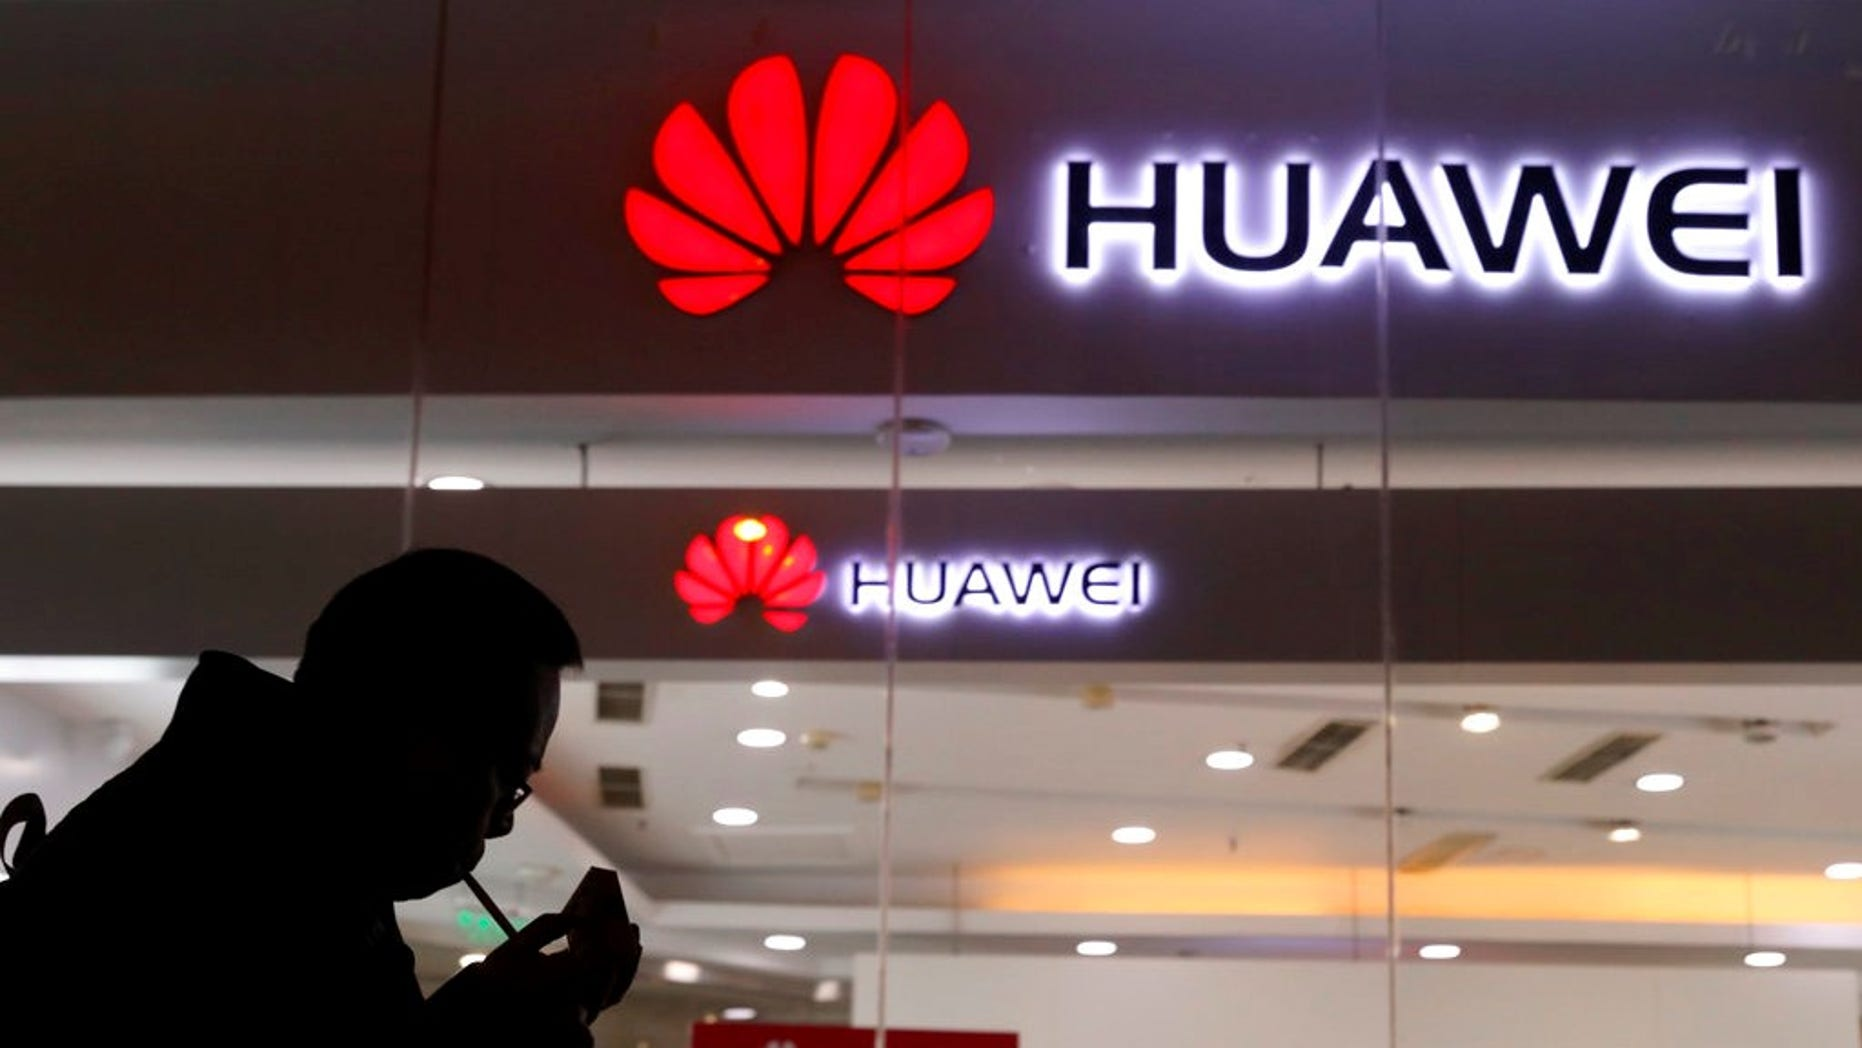 Polish security services have charged a Chinese manager at tech giant Huawei in Poland and a Polish former intelligence officer with espionage against the country on behest of China.